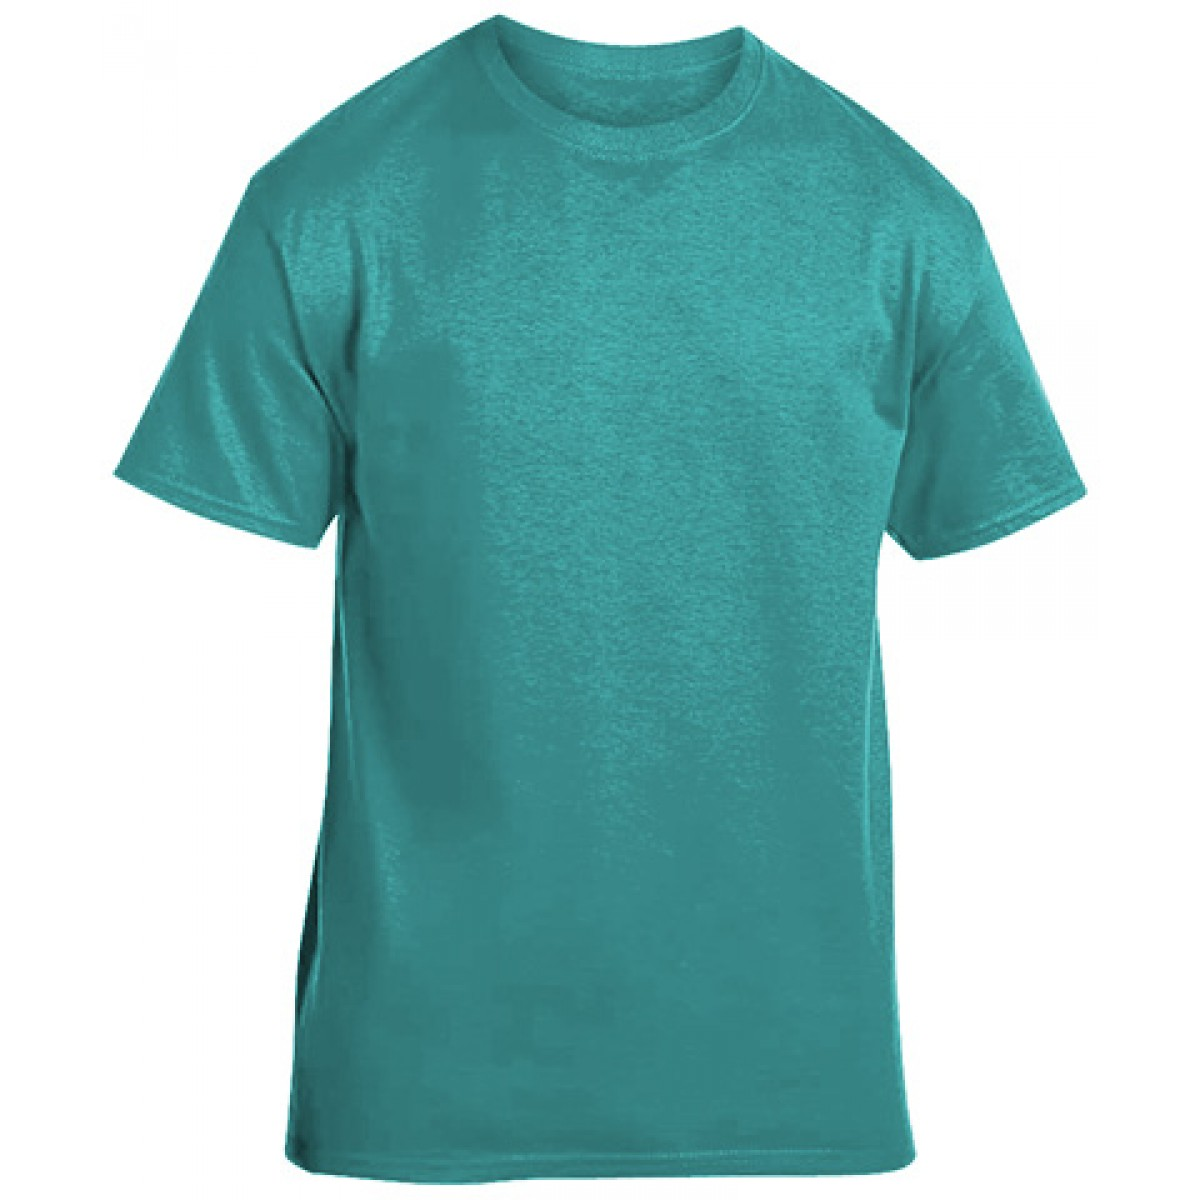 Soft 100% Cotton T-Shirt-Jade-S